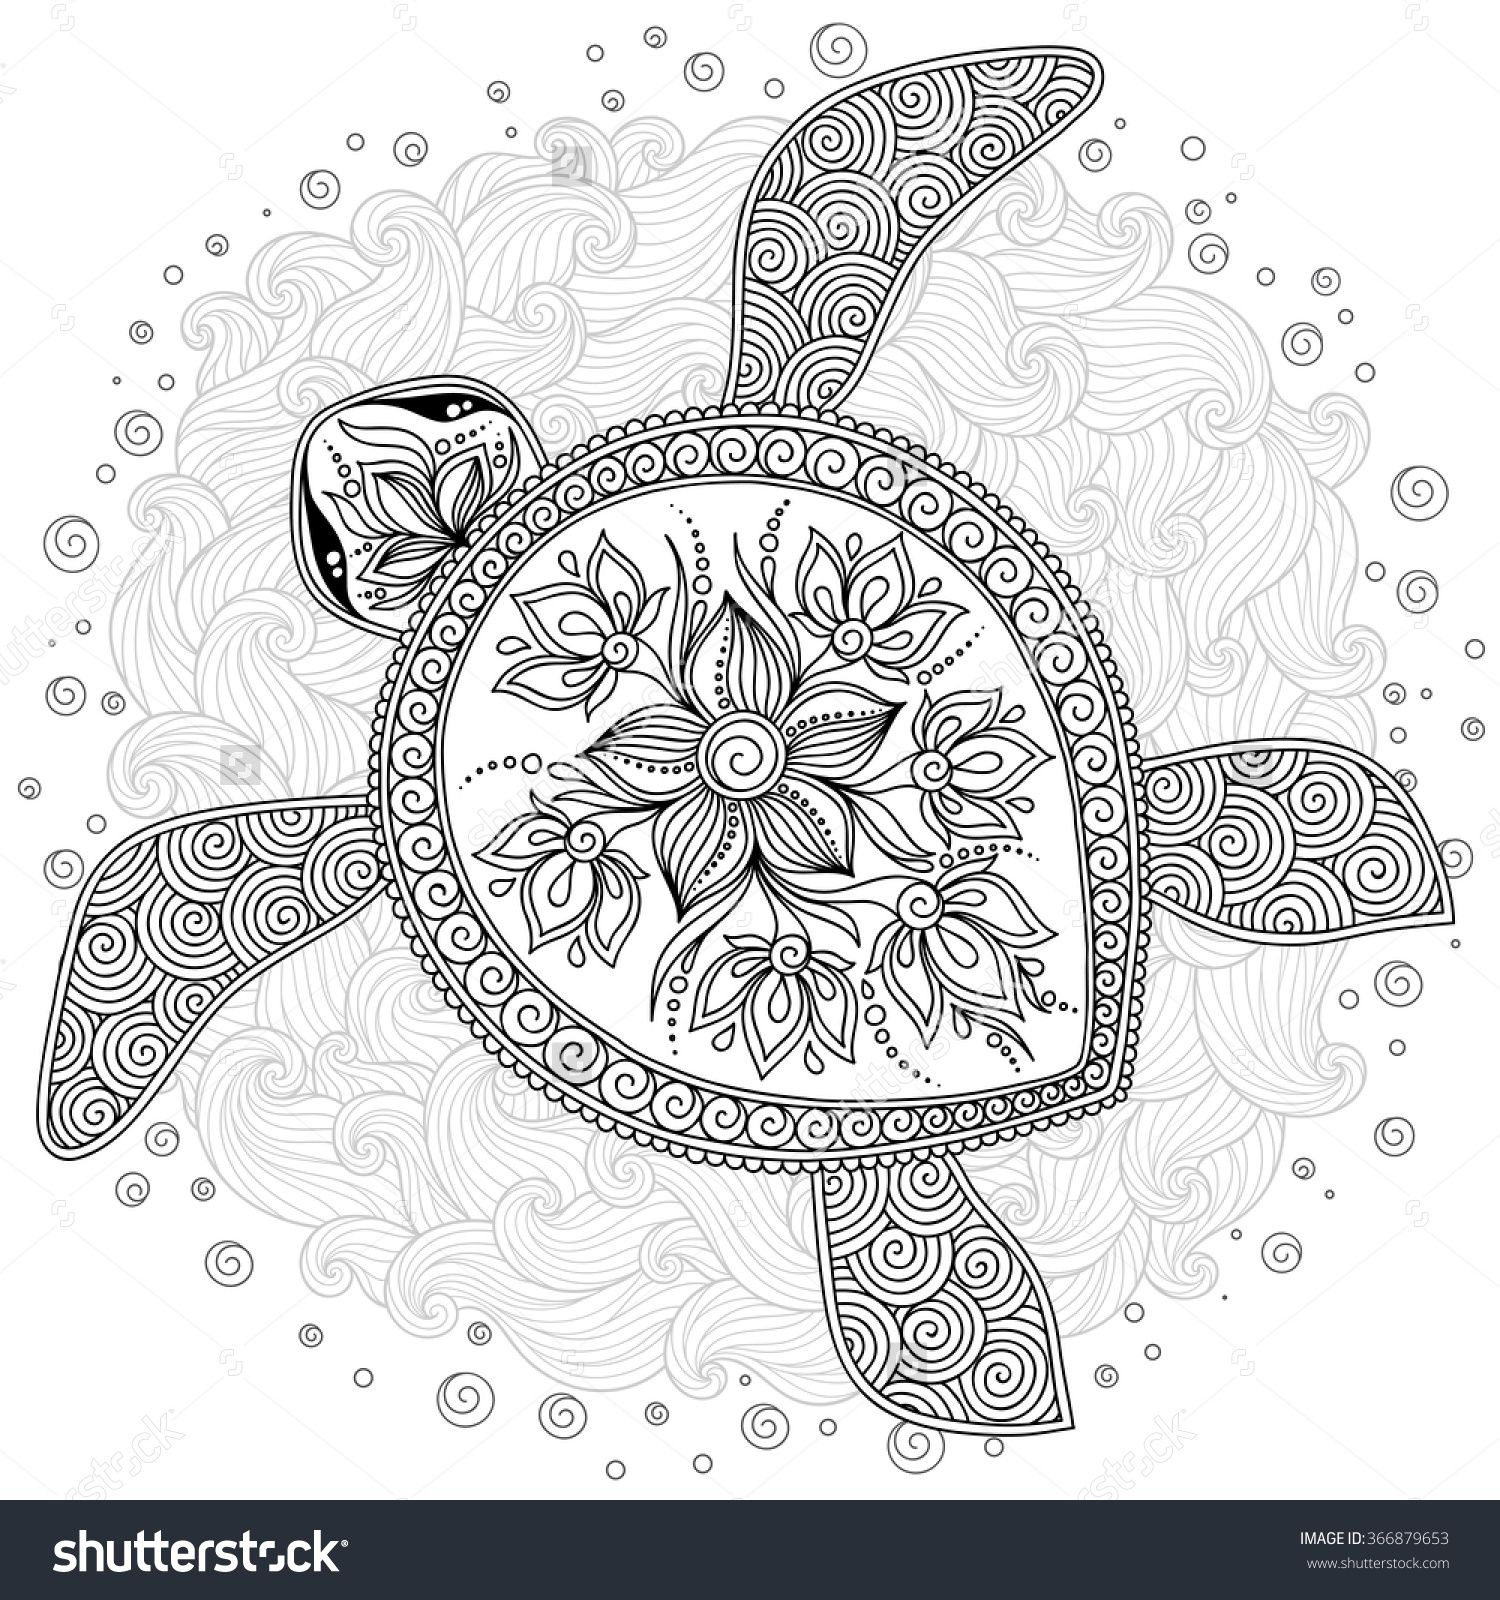 Coloring Pages Hand Drawn Sea Turtle Mascot For Adult Coloring